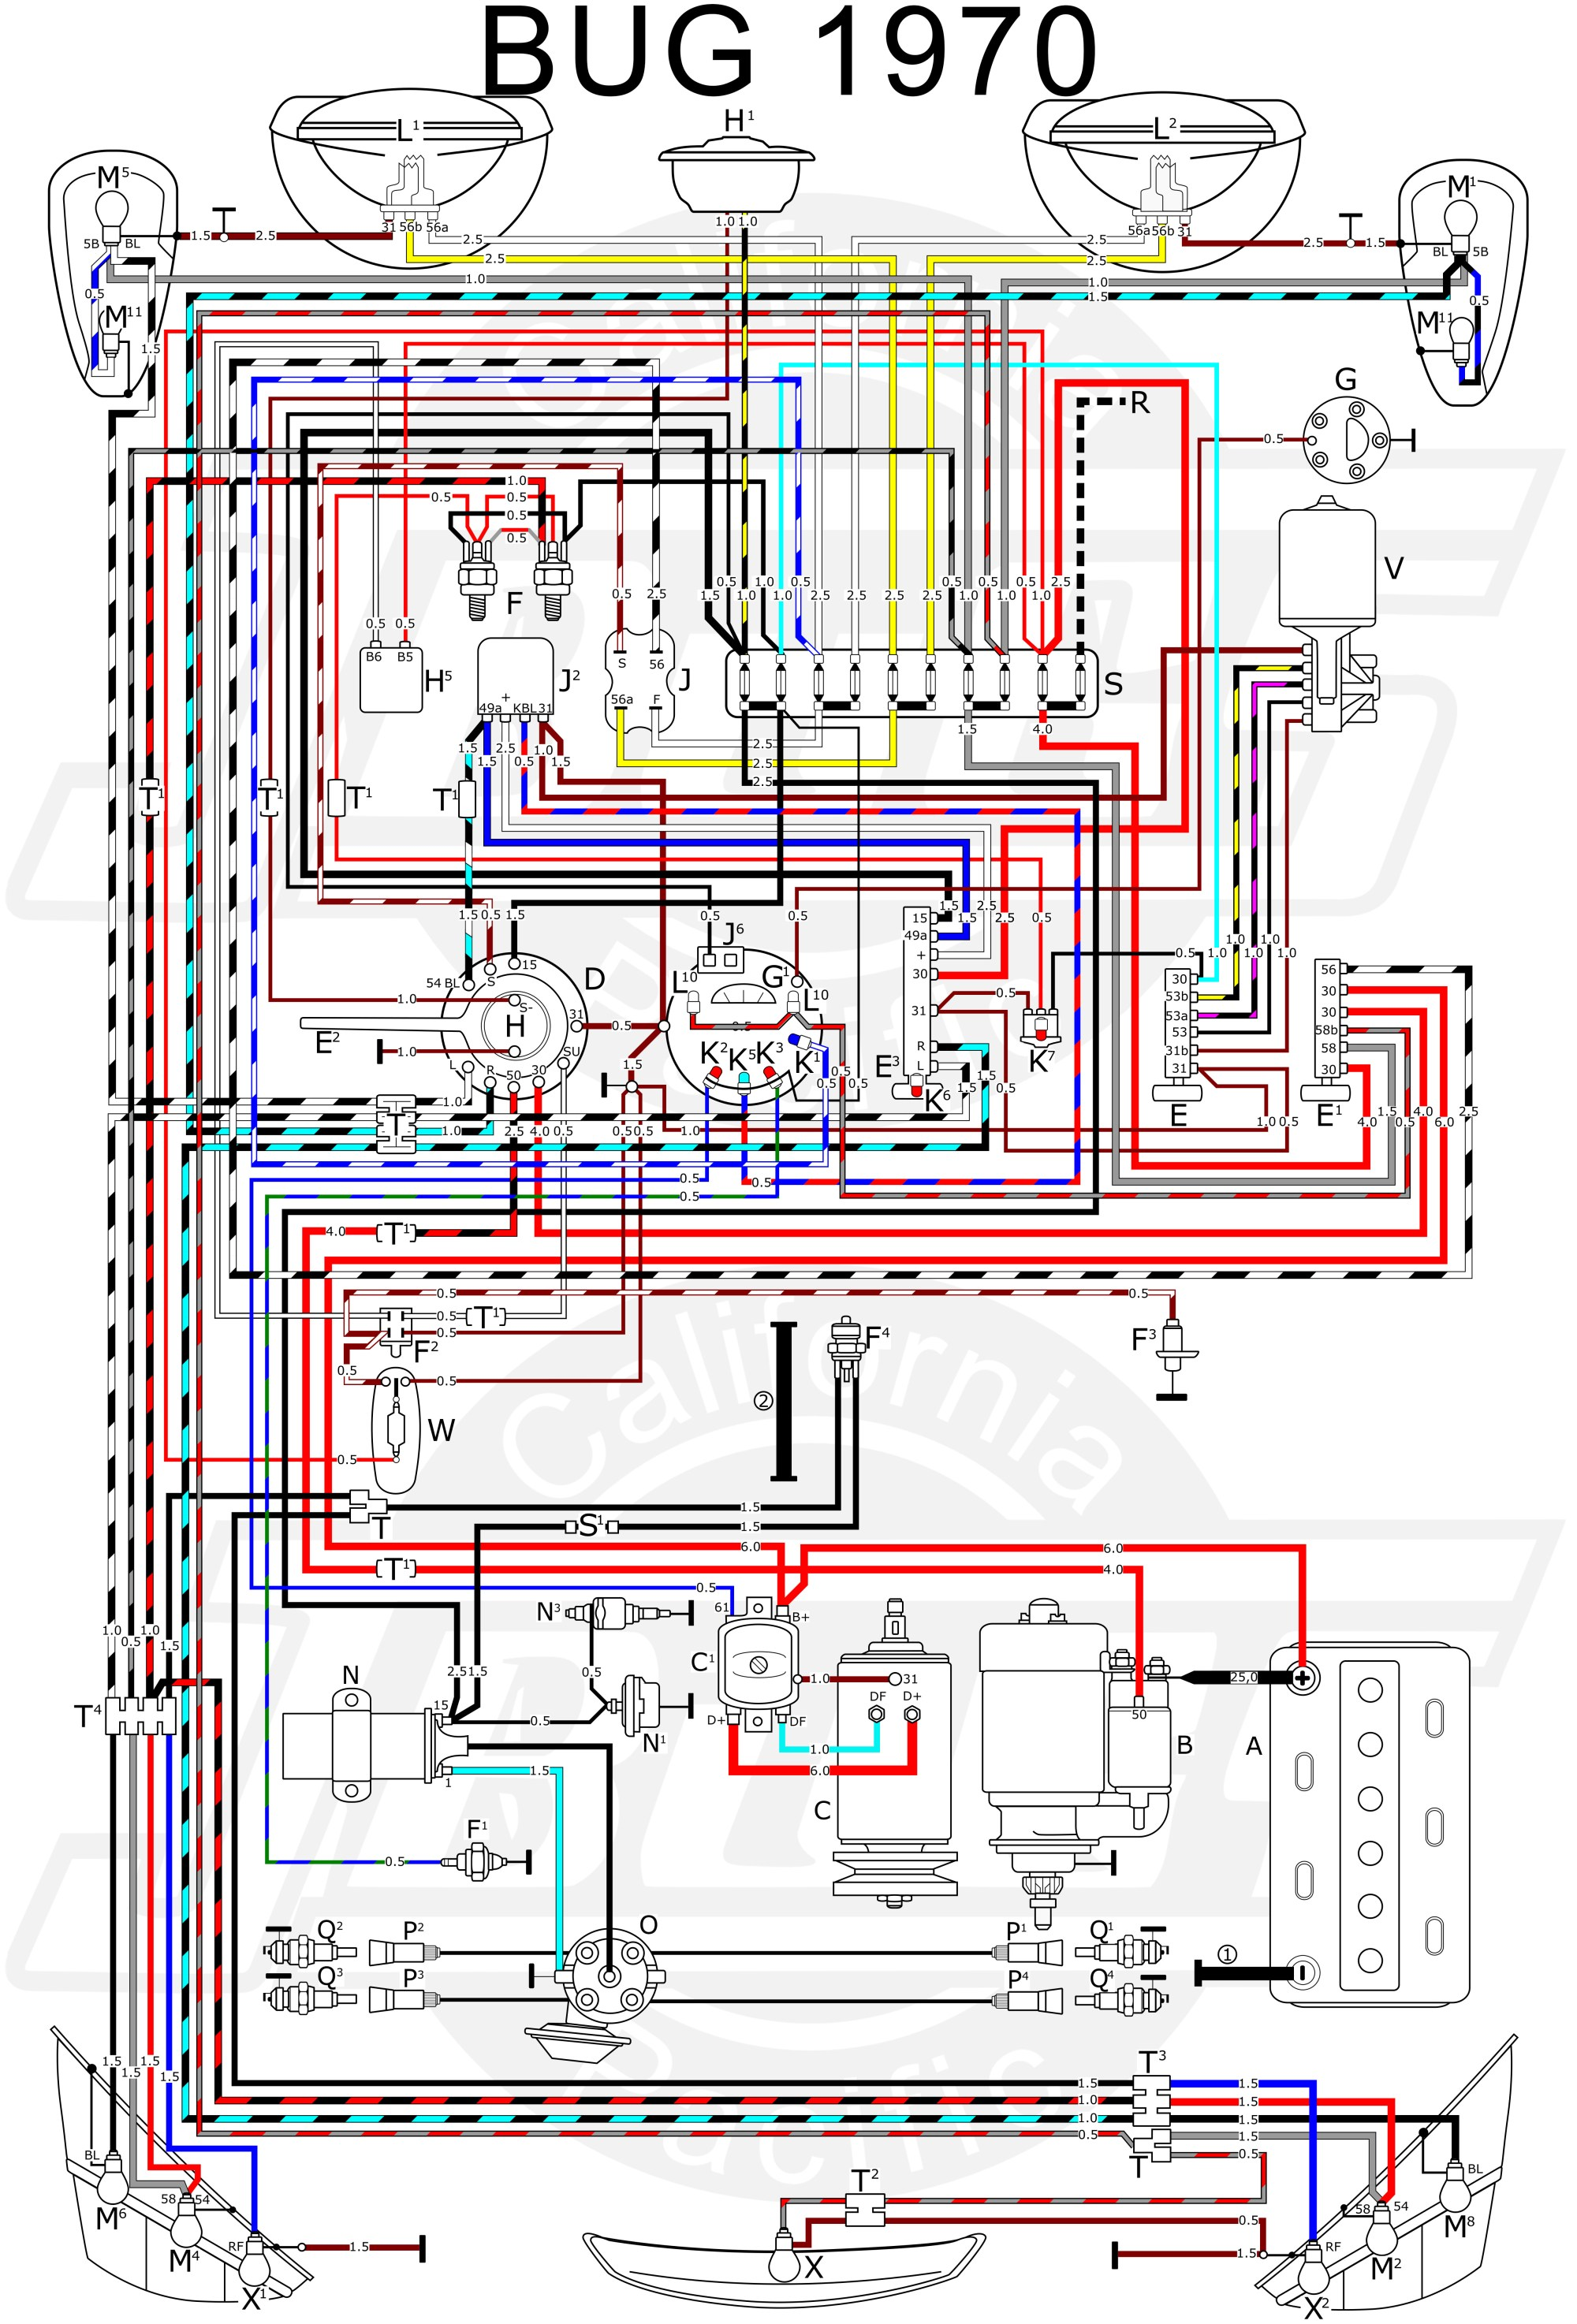 hight resolution of vw carb wiring wiring diagram todays vw 1600 rebuild kit vw carb wiring